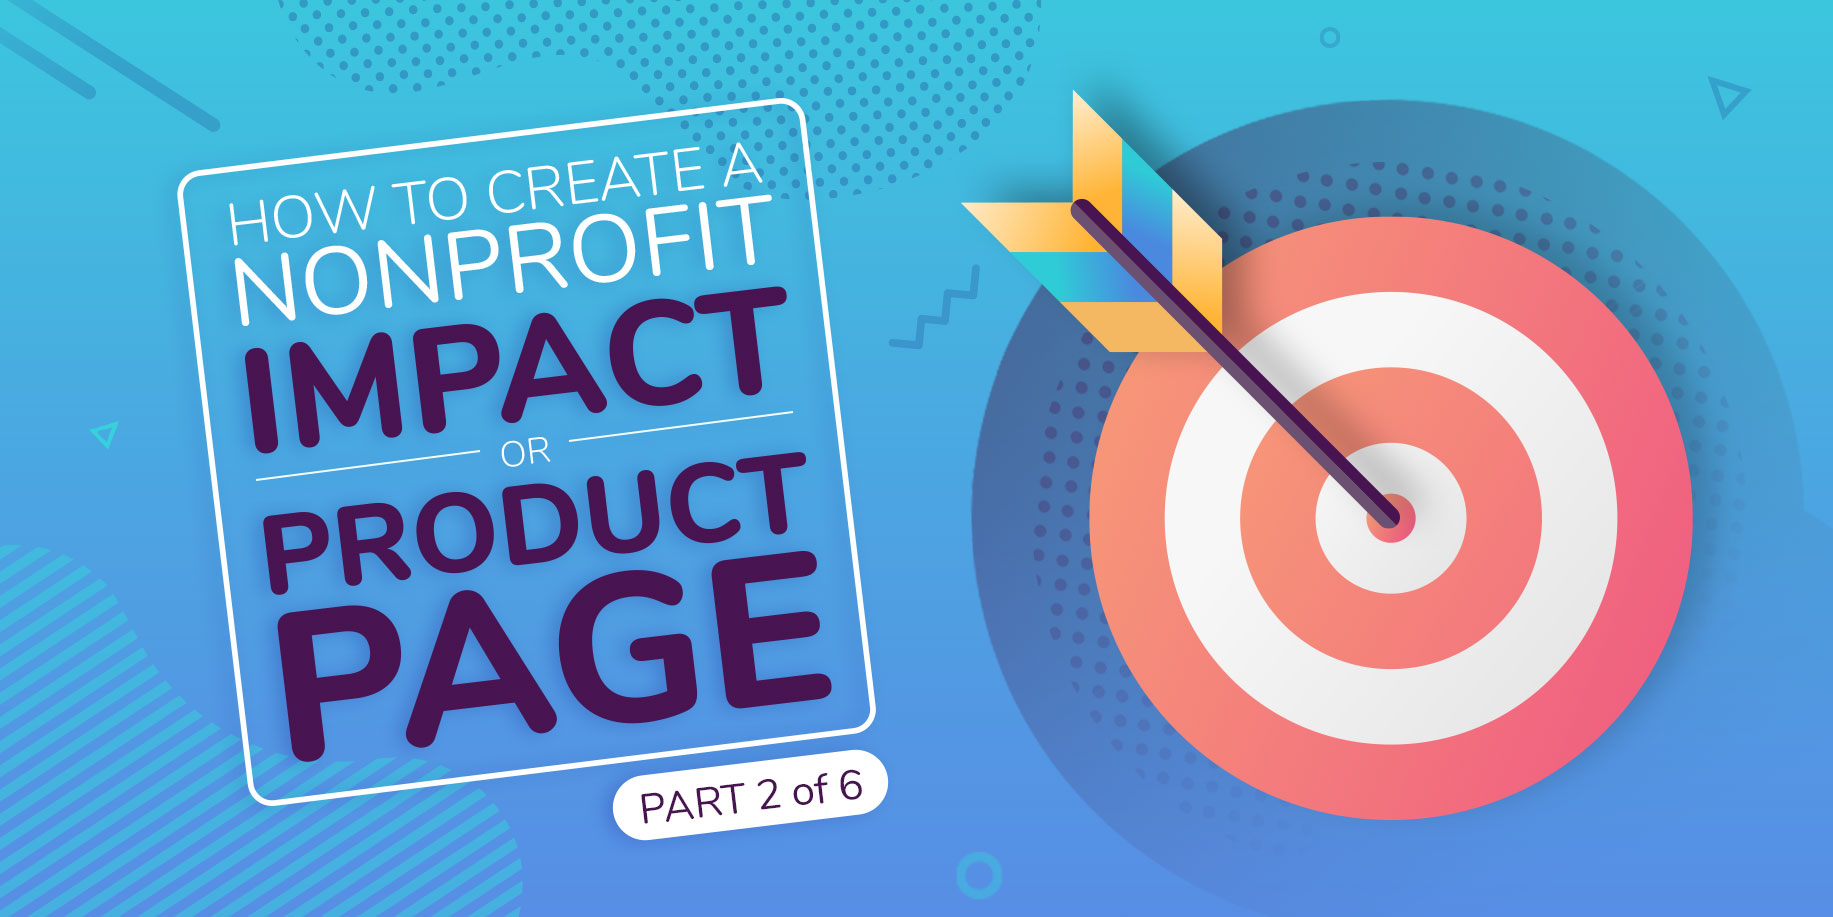 How to Create a Nonprofit Website Impact Page or Program Page